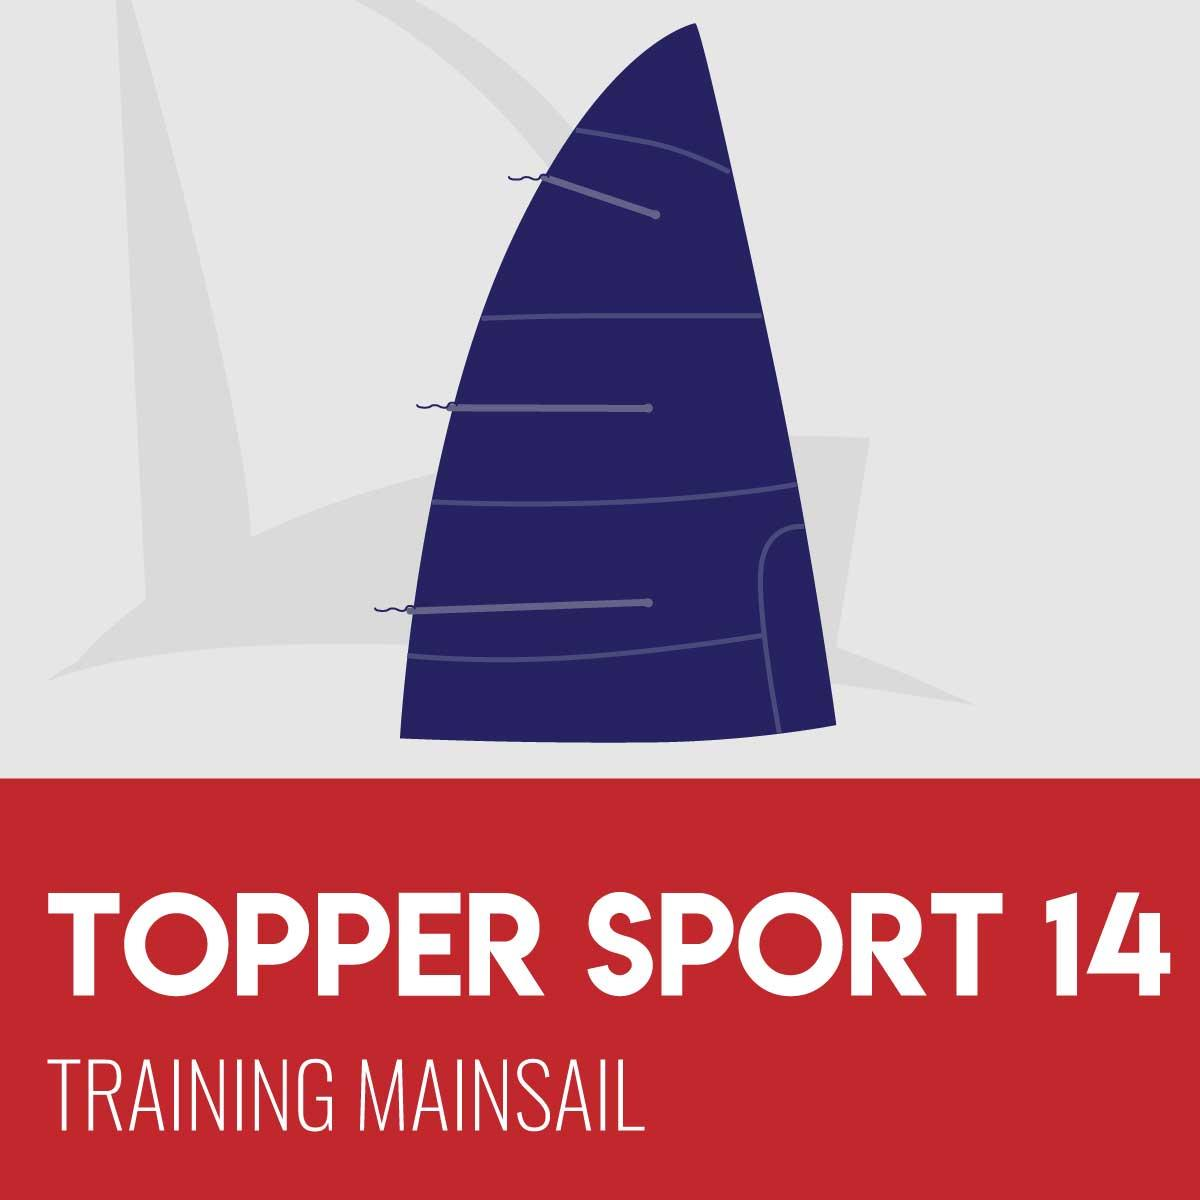 Topper Sport 14 Training Mainsail